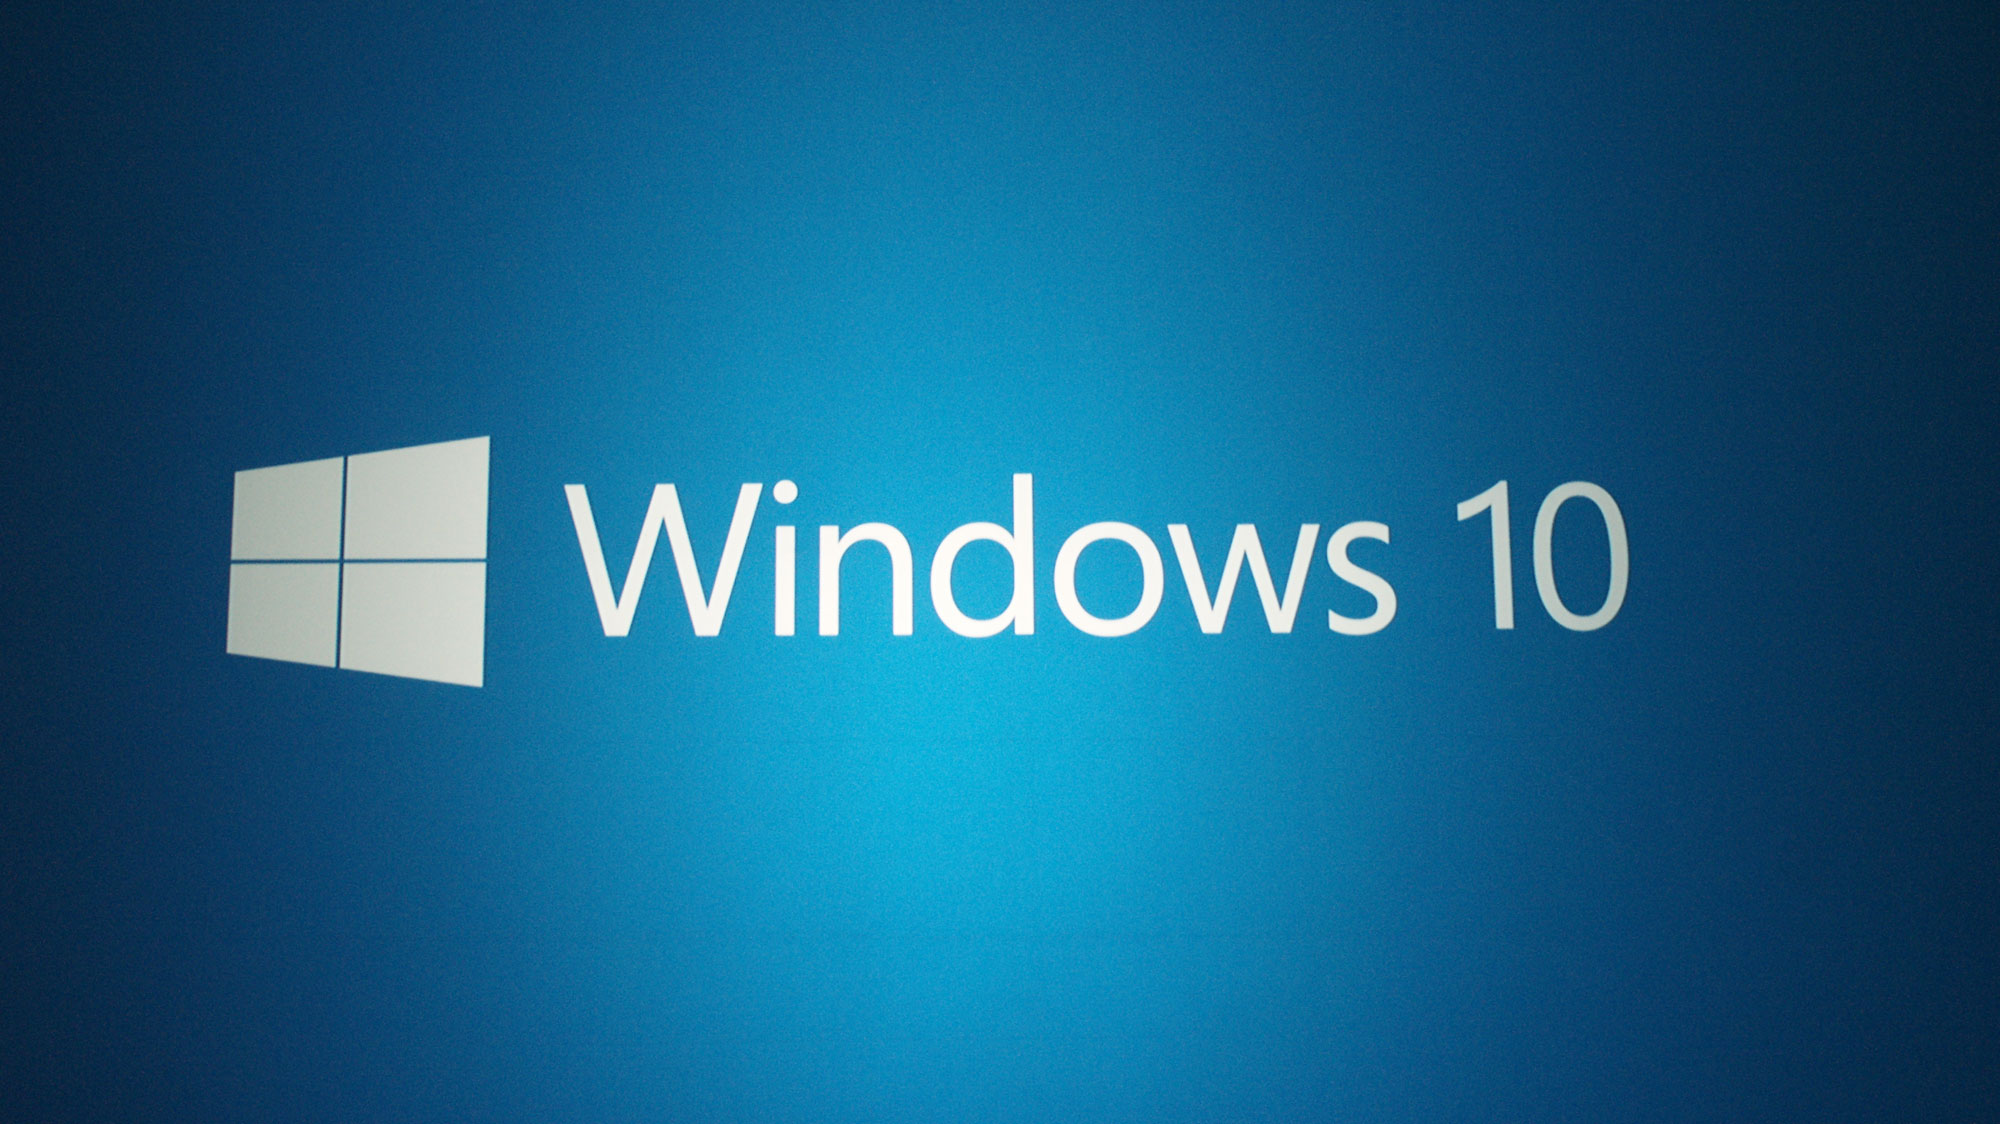 Hands On With the Windows 10 Preview Build